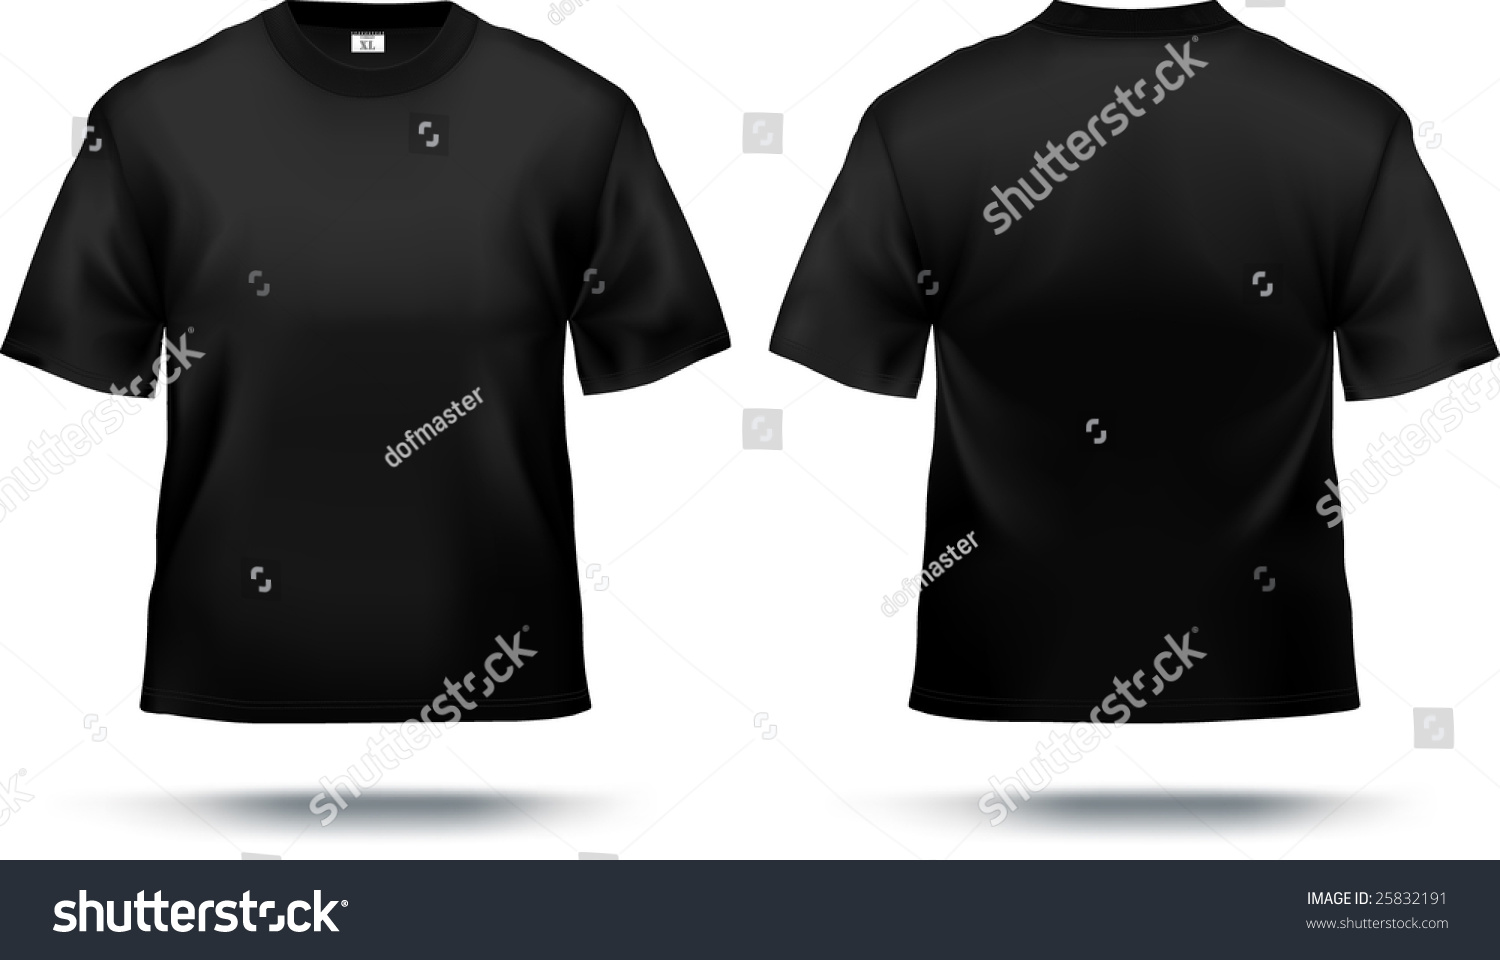 Black t shirt design template - Black T Shirt Design Template Front Back Contains Gradient Mesh Elements